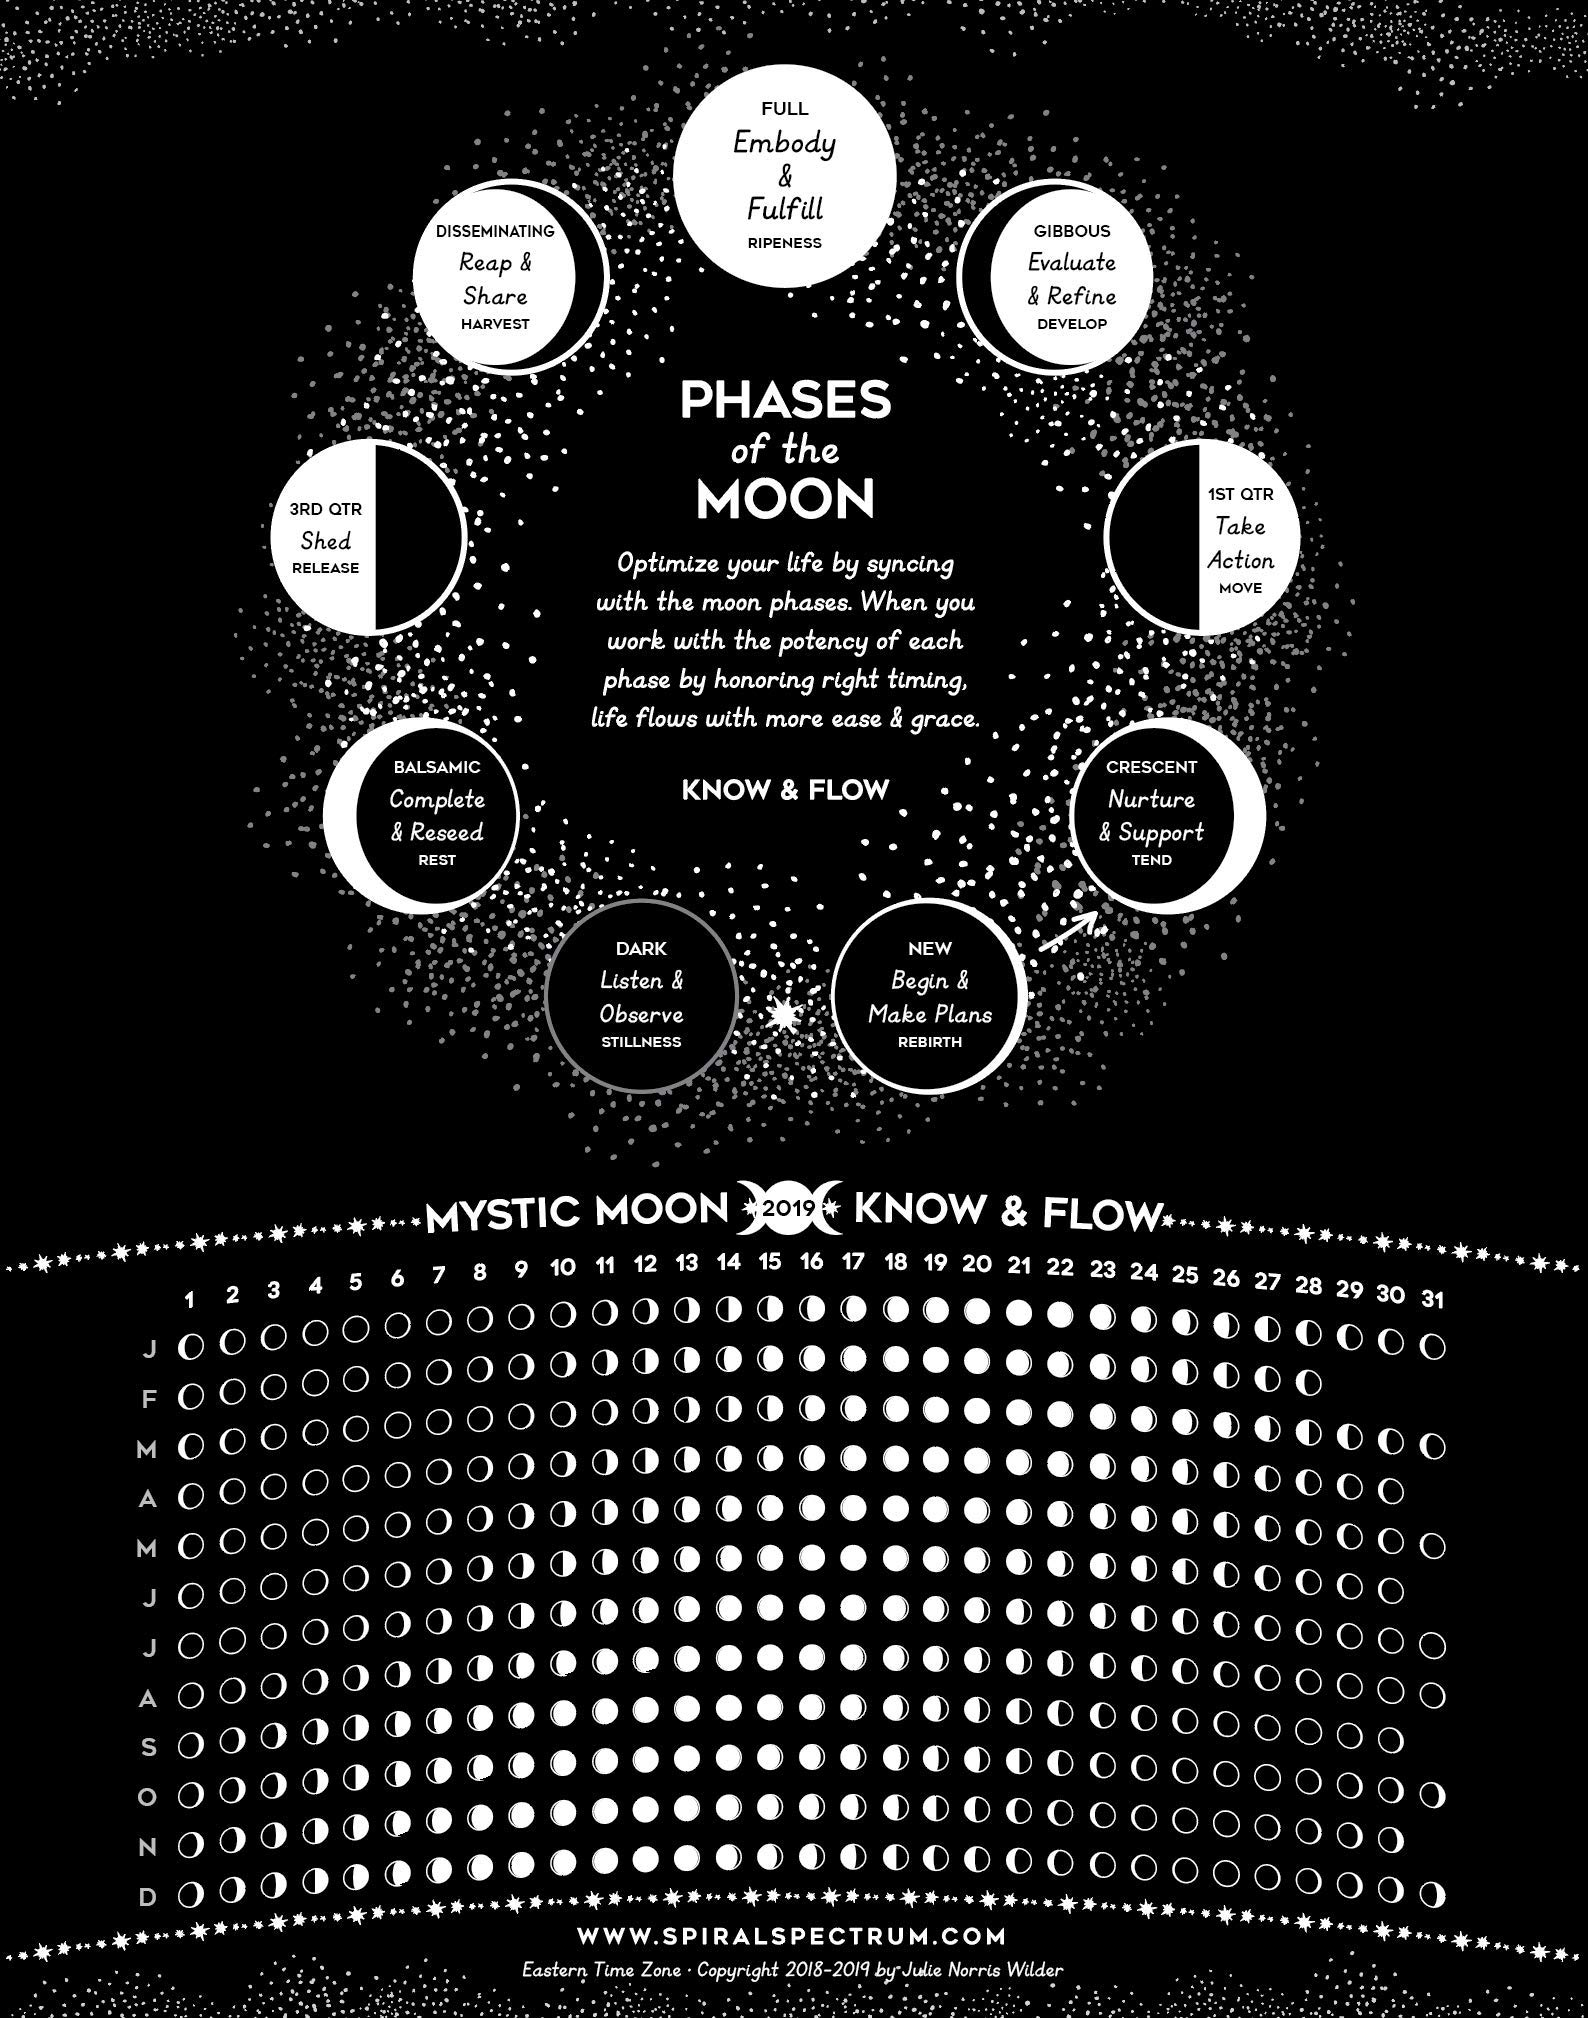 2019 Spiral Spectrum's Mystic Moon Phase Chart 11